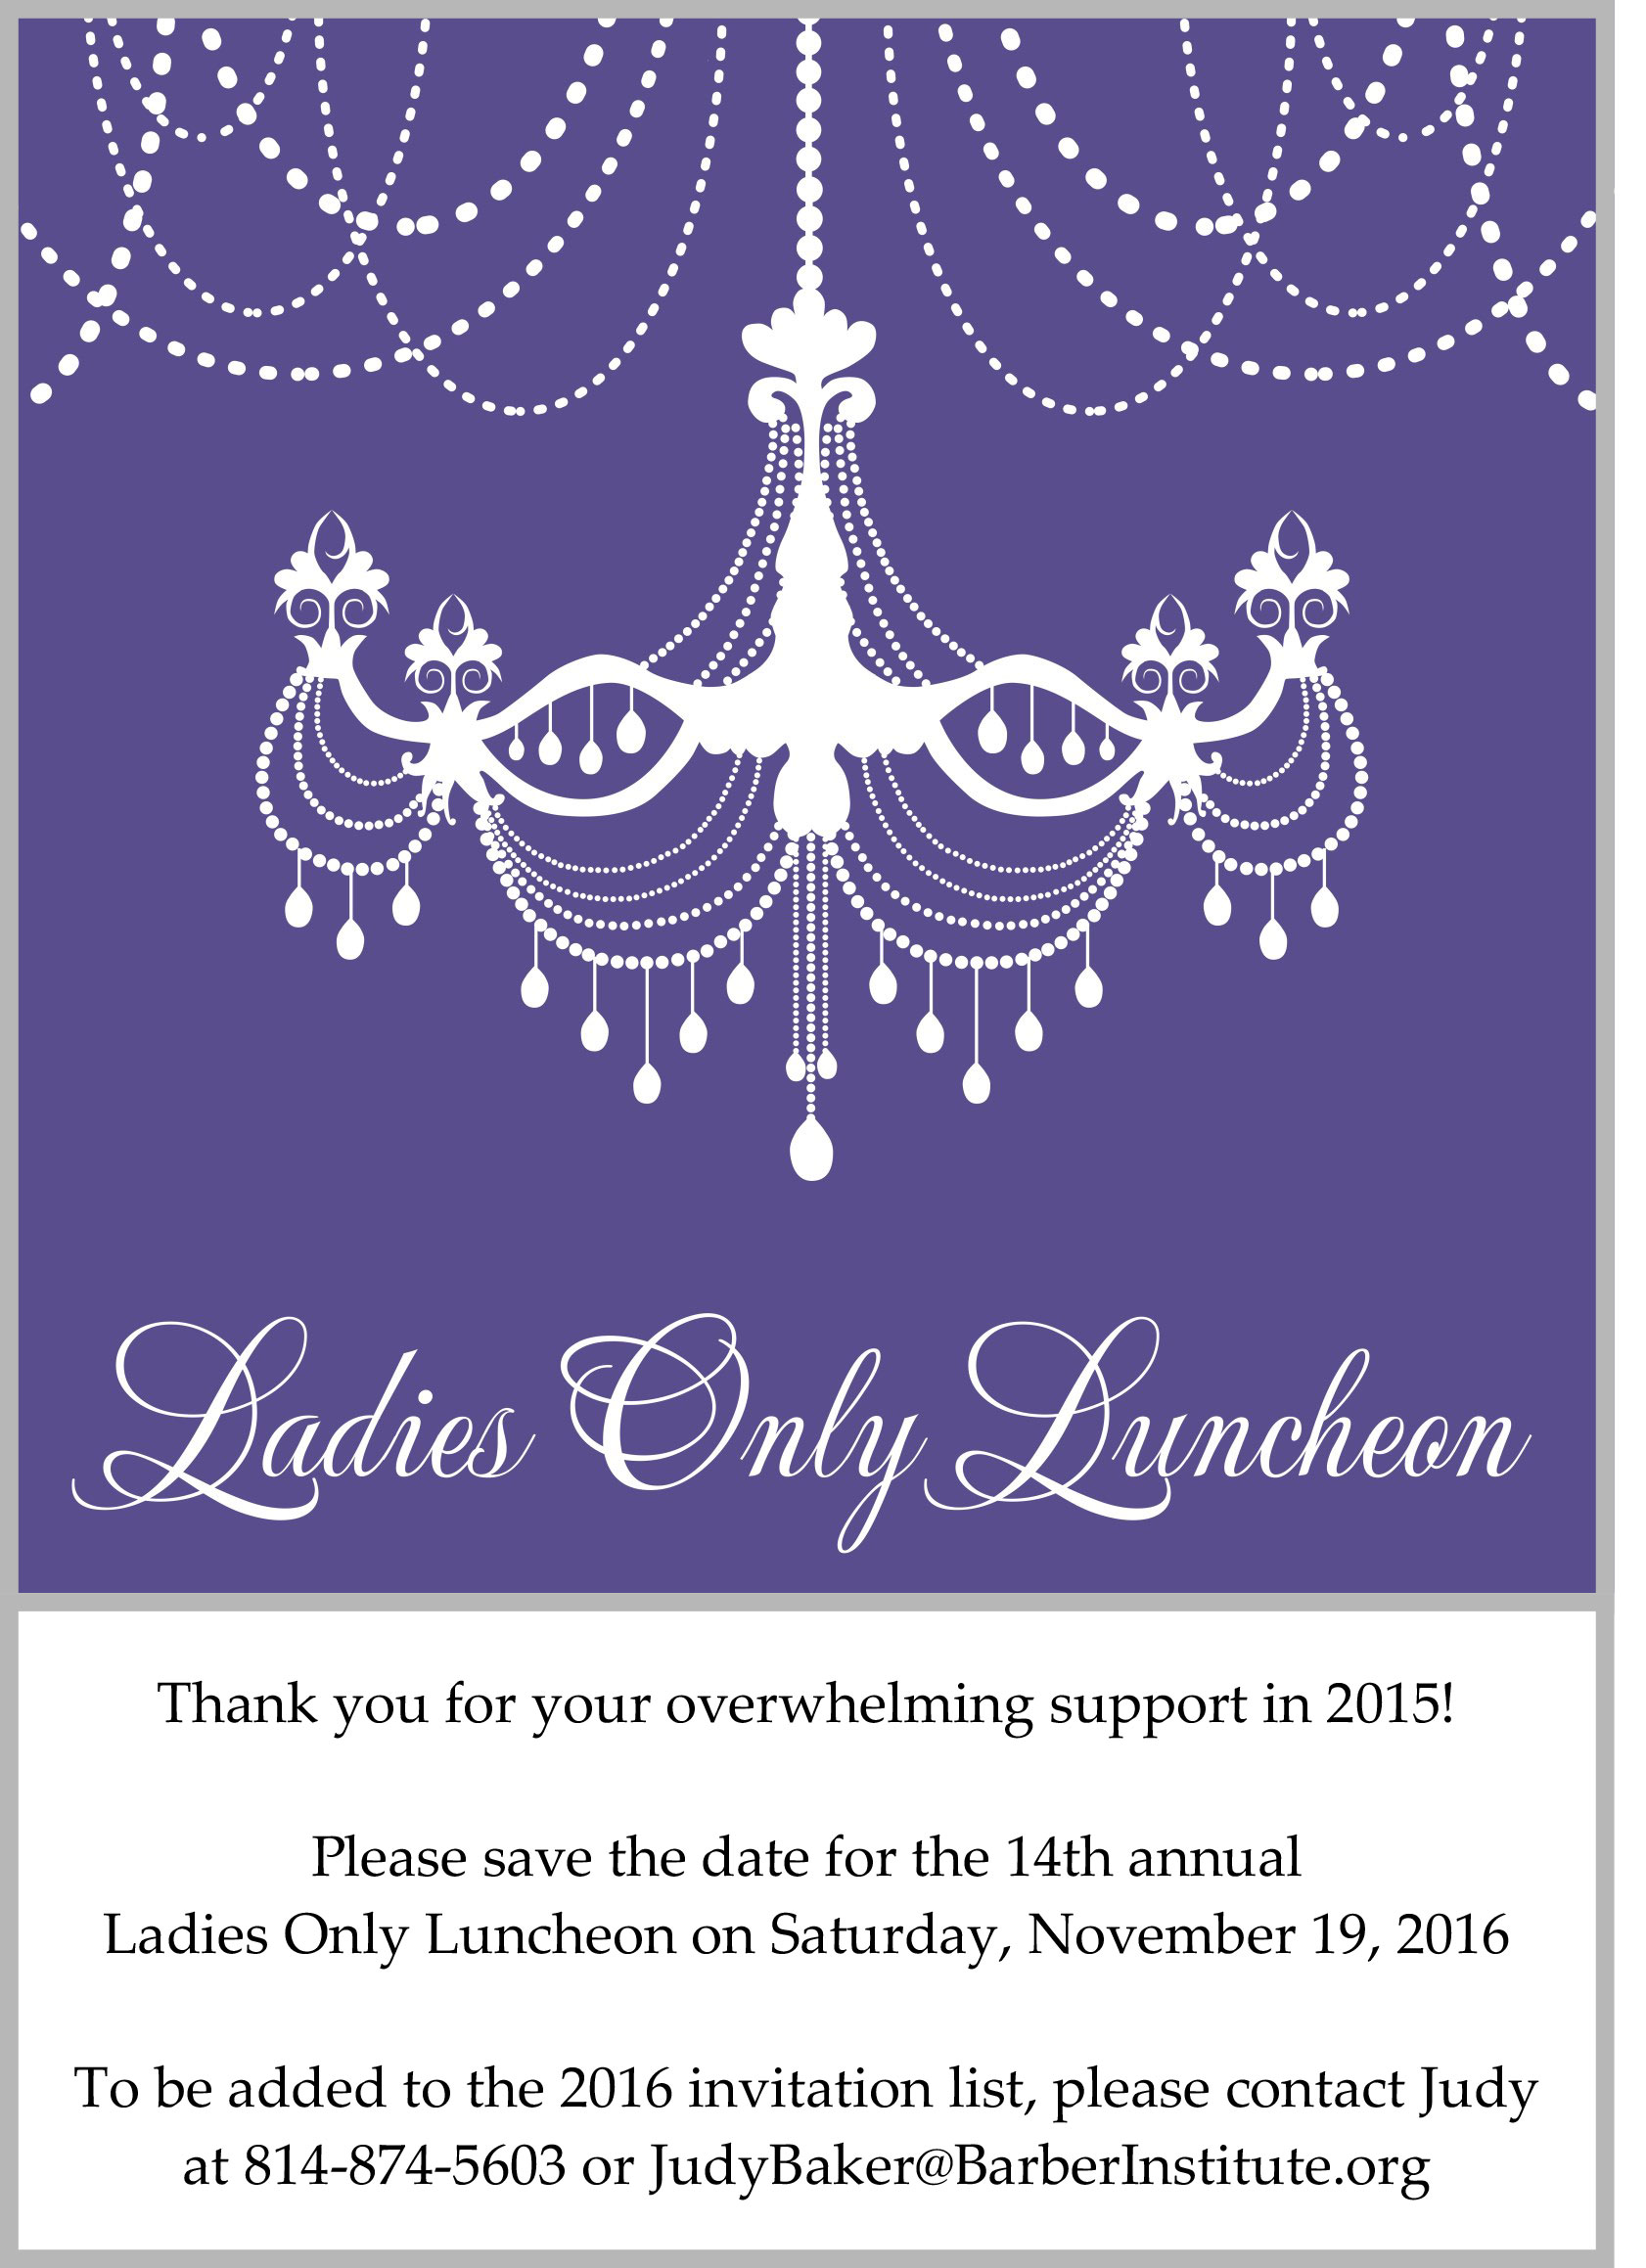 Ladies Only Luncheon